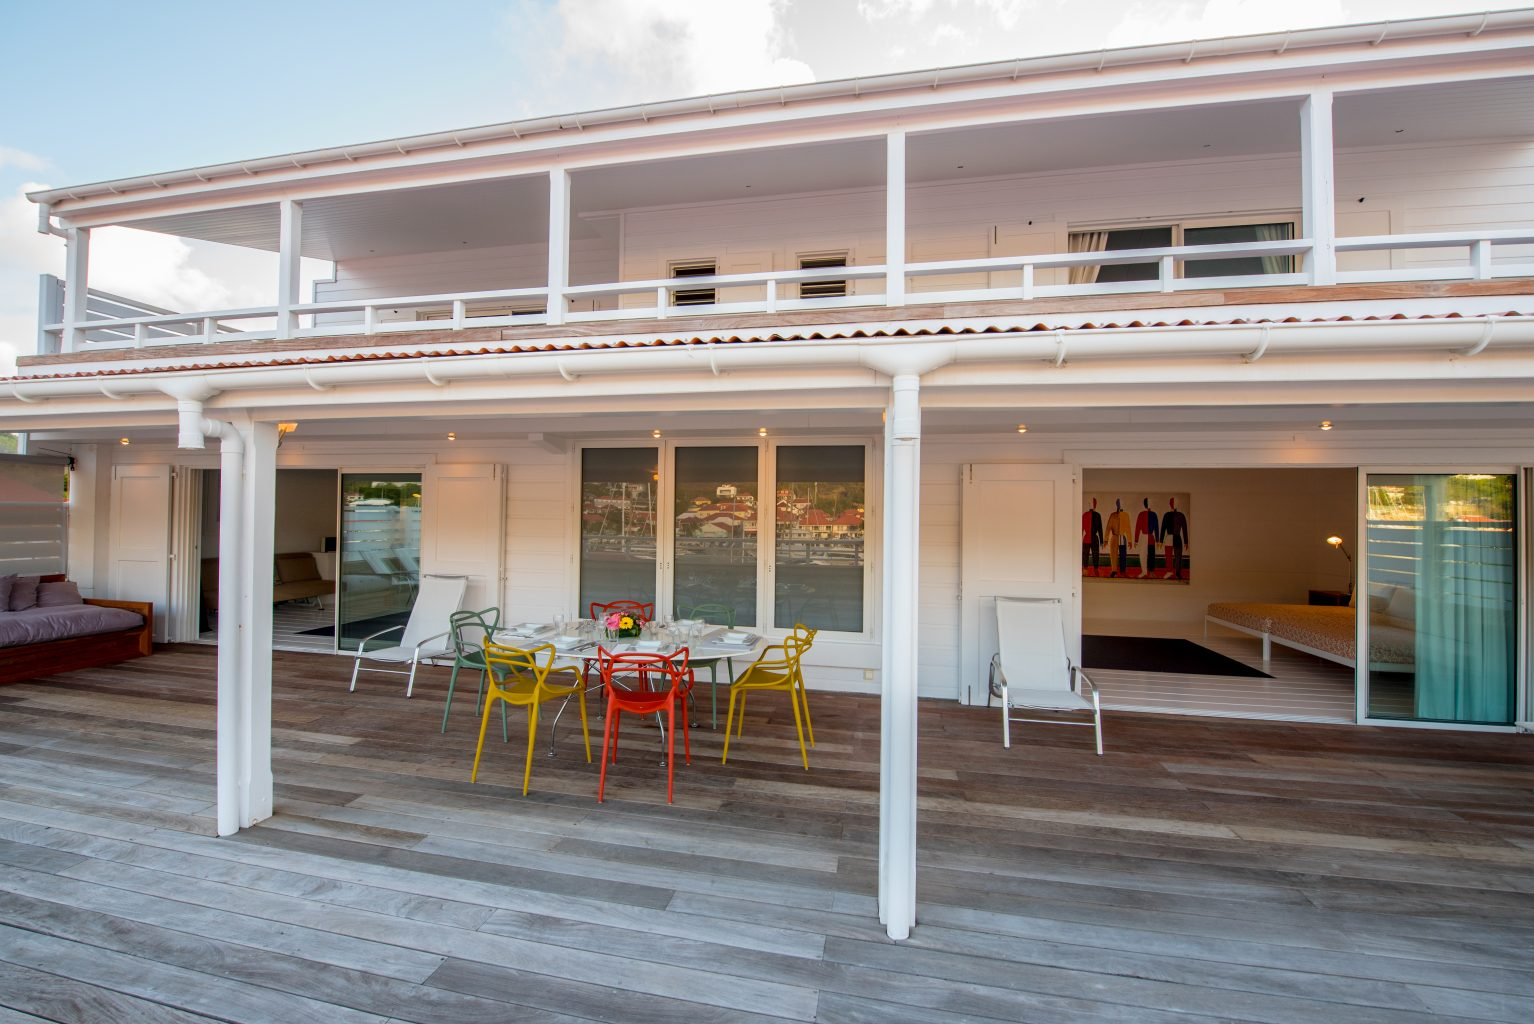 Penthouse Gustavia - Luxury Penthouse Rental City view - Outside view